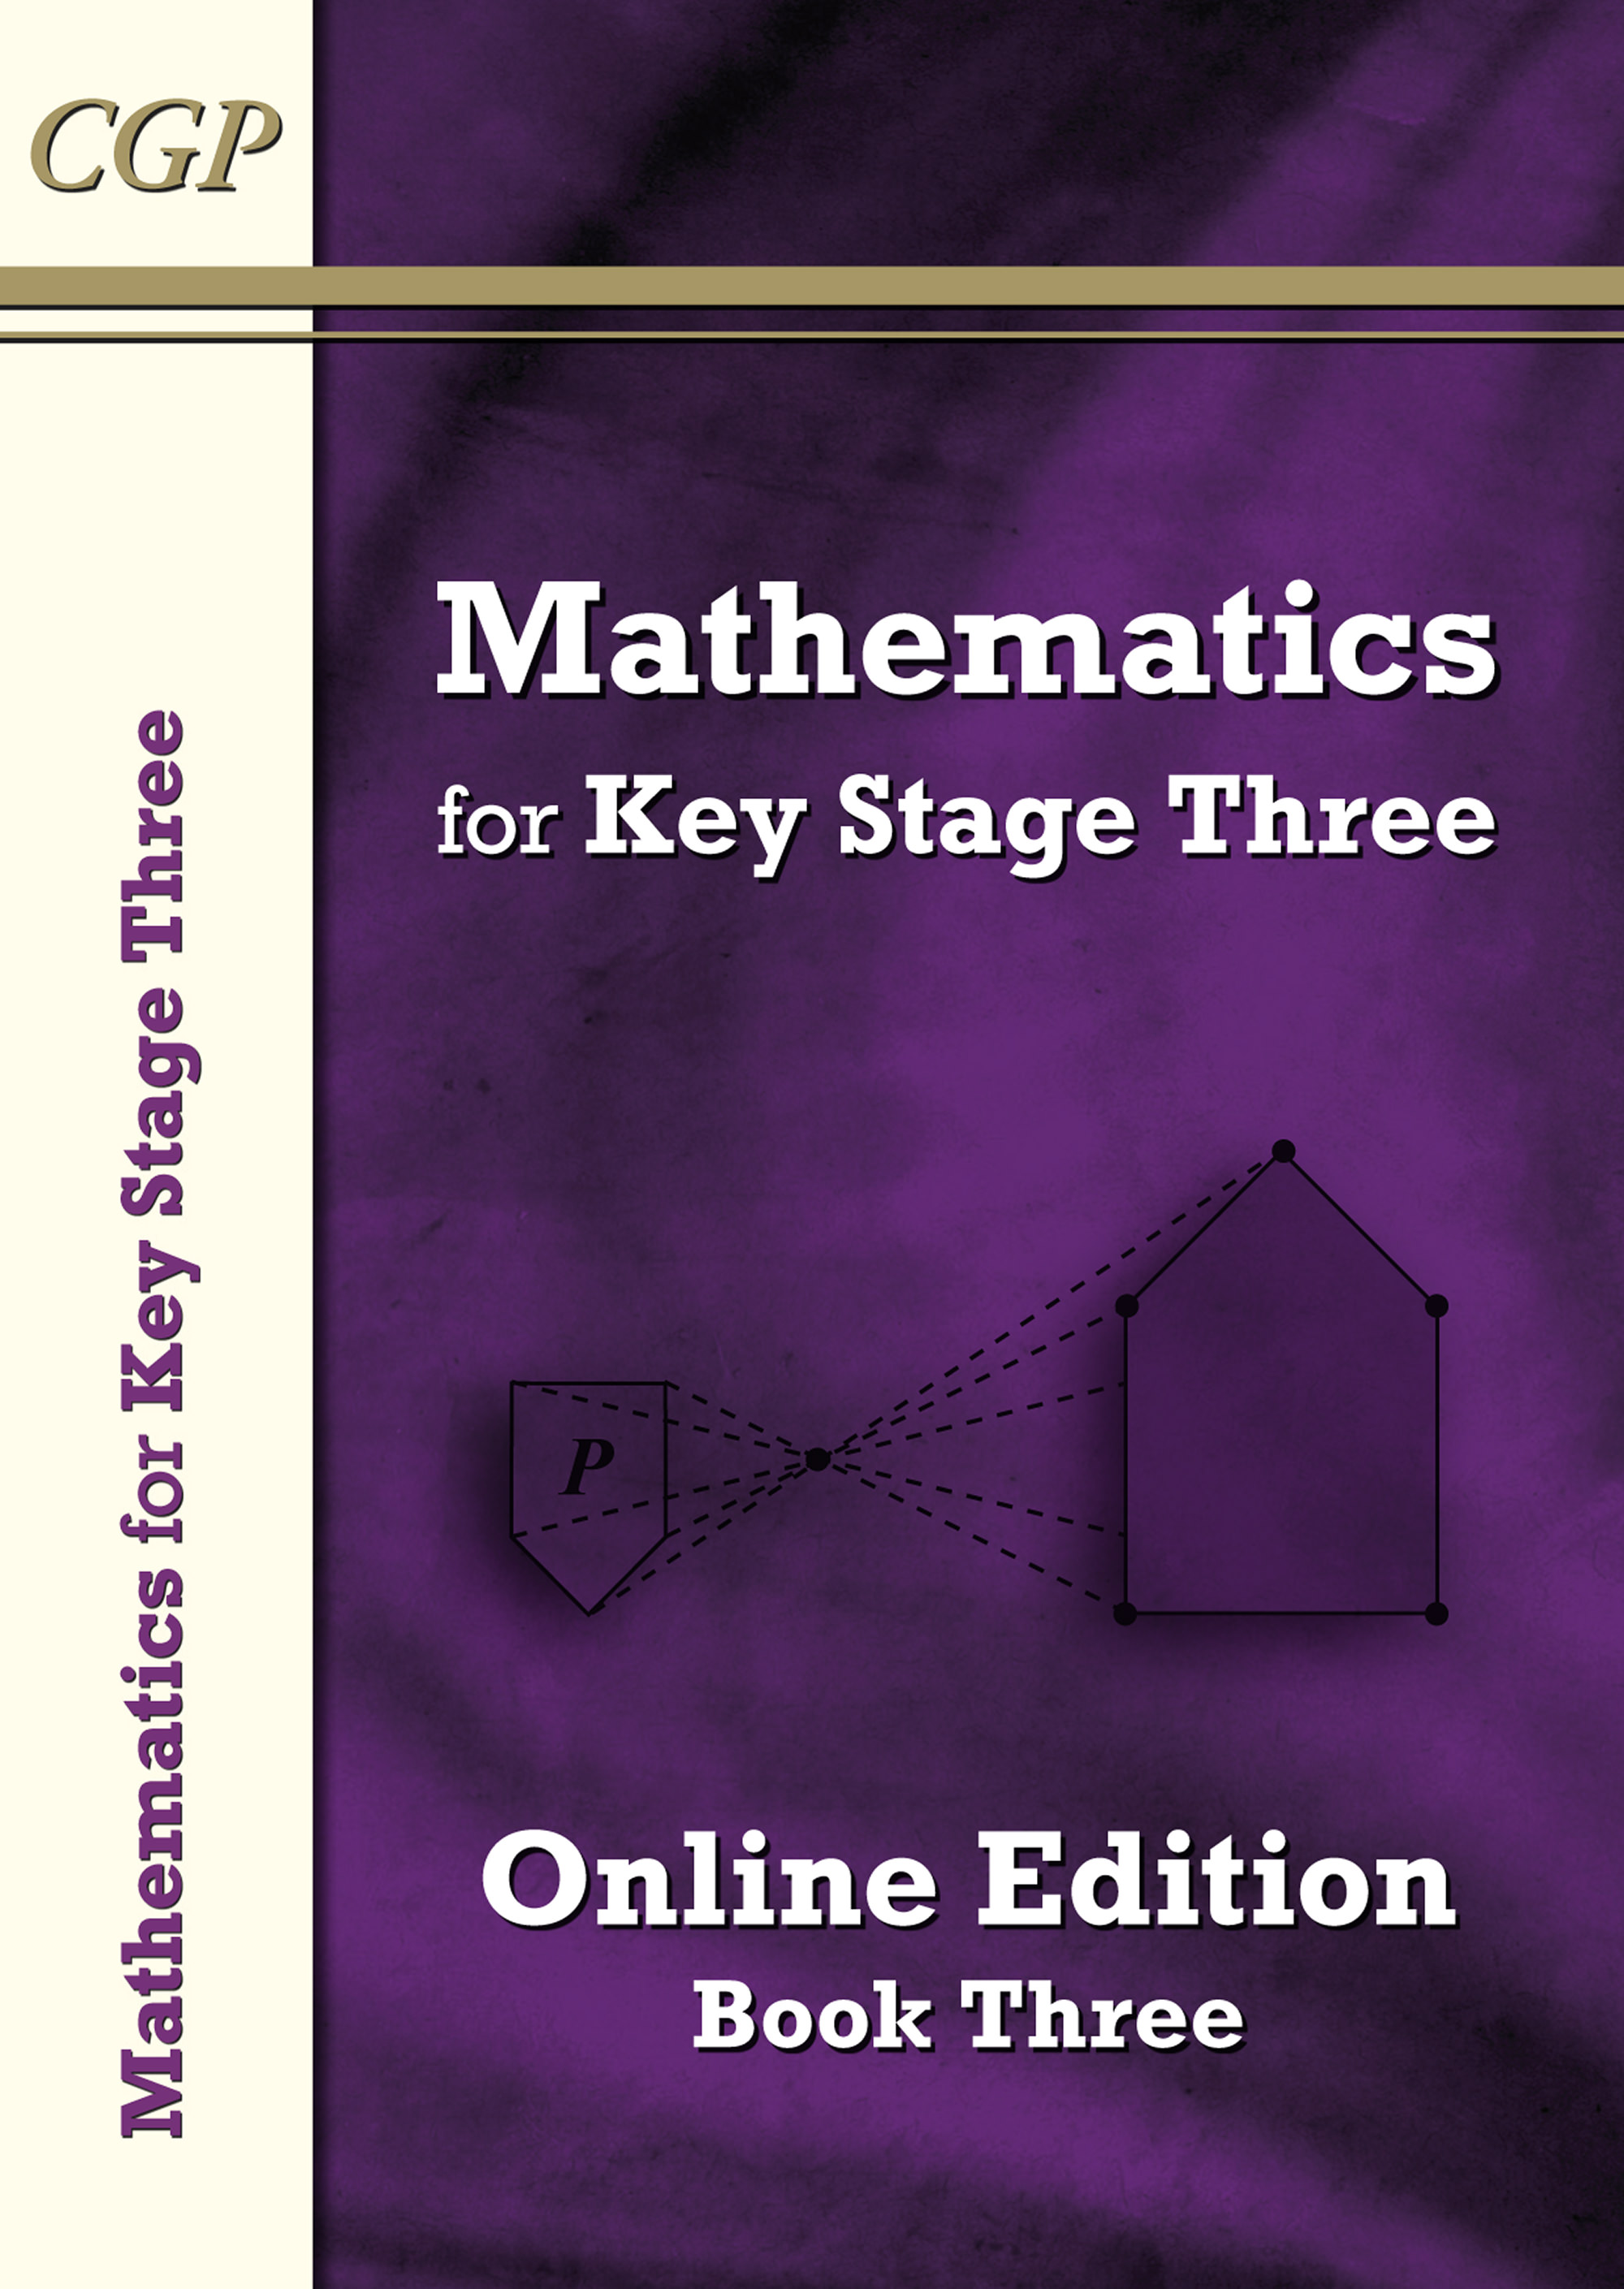 M3NN31G - KS3 Maths Textbook 3: Student Online Edition (without answers)